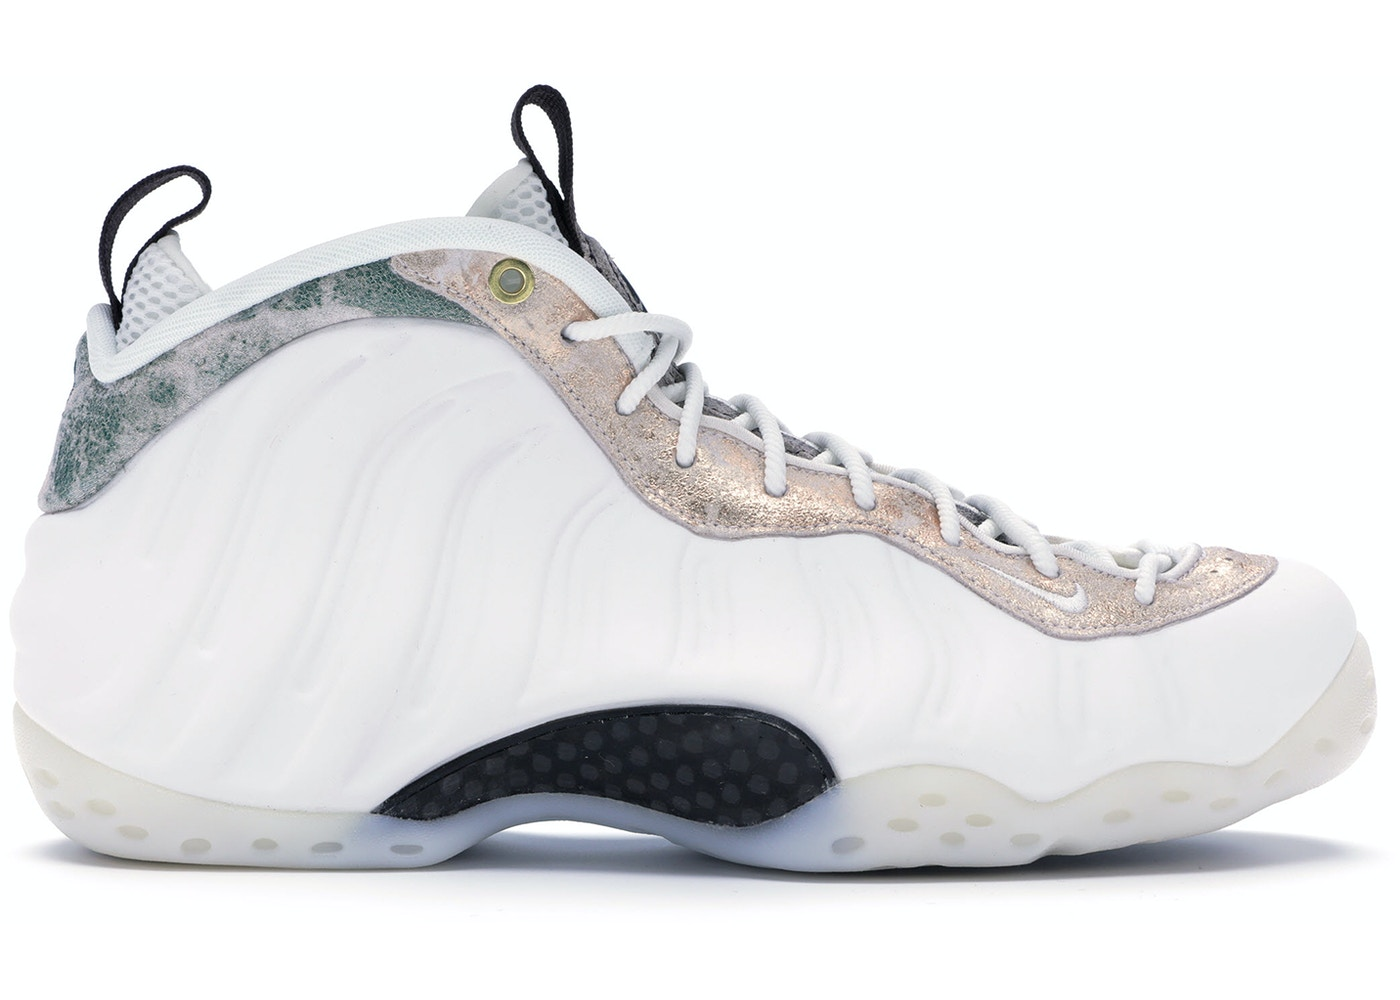 half off aab0c 1b8ed Buy Nike Foamposite Shoes & Deadstock Sneakers